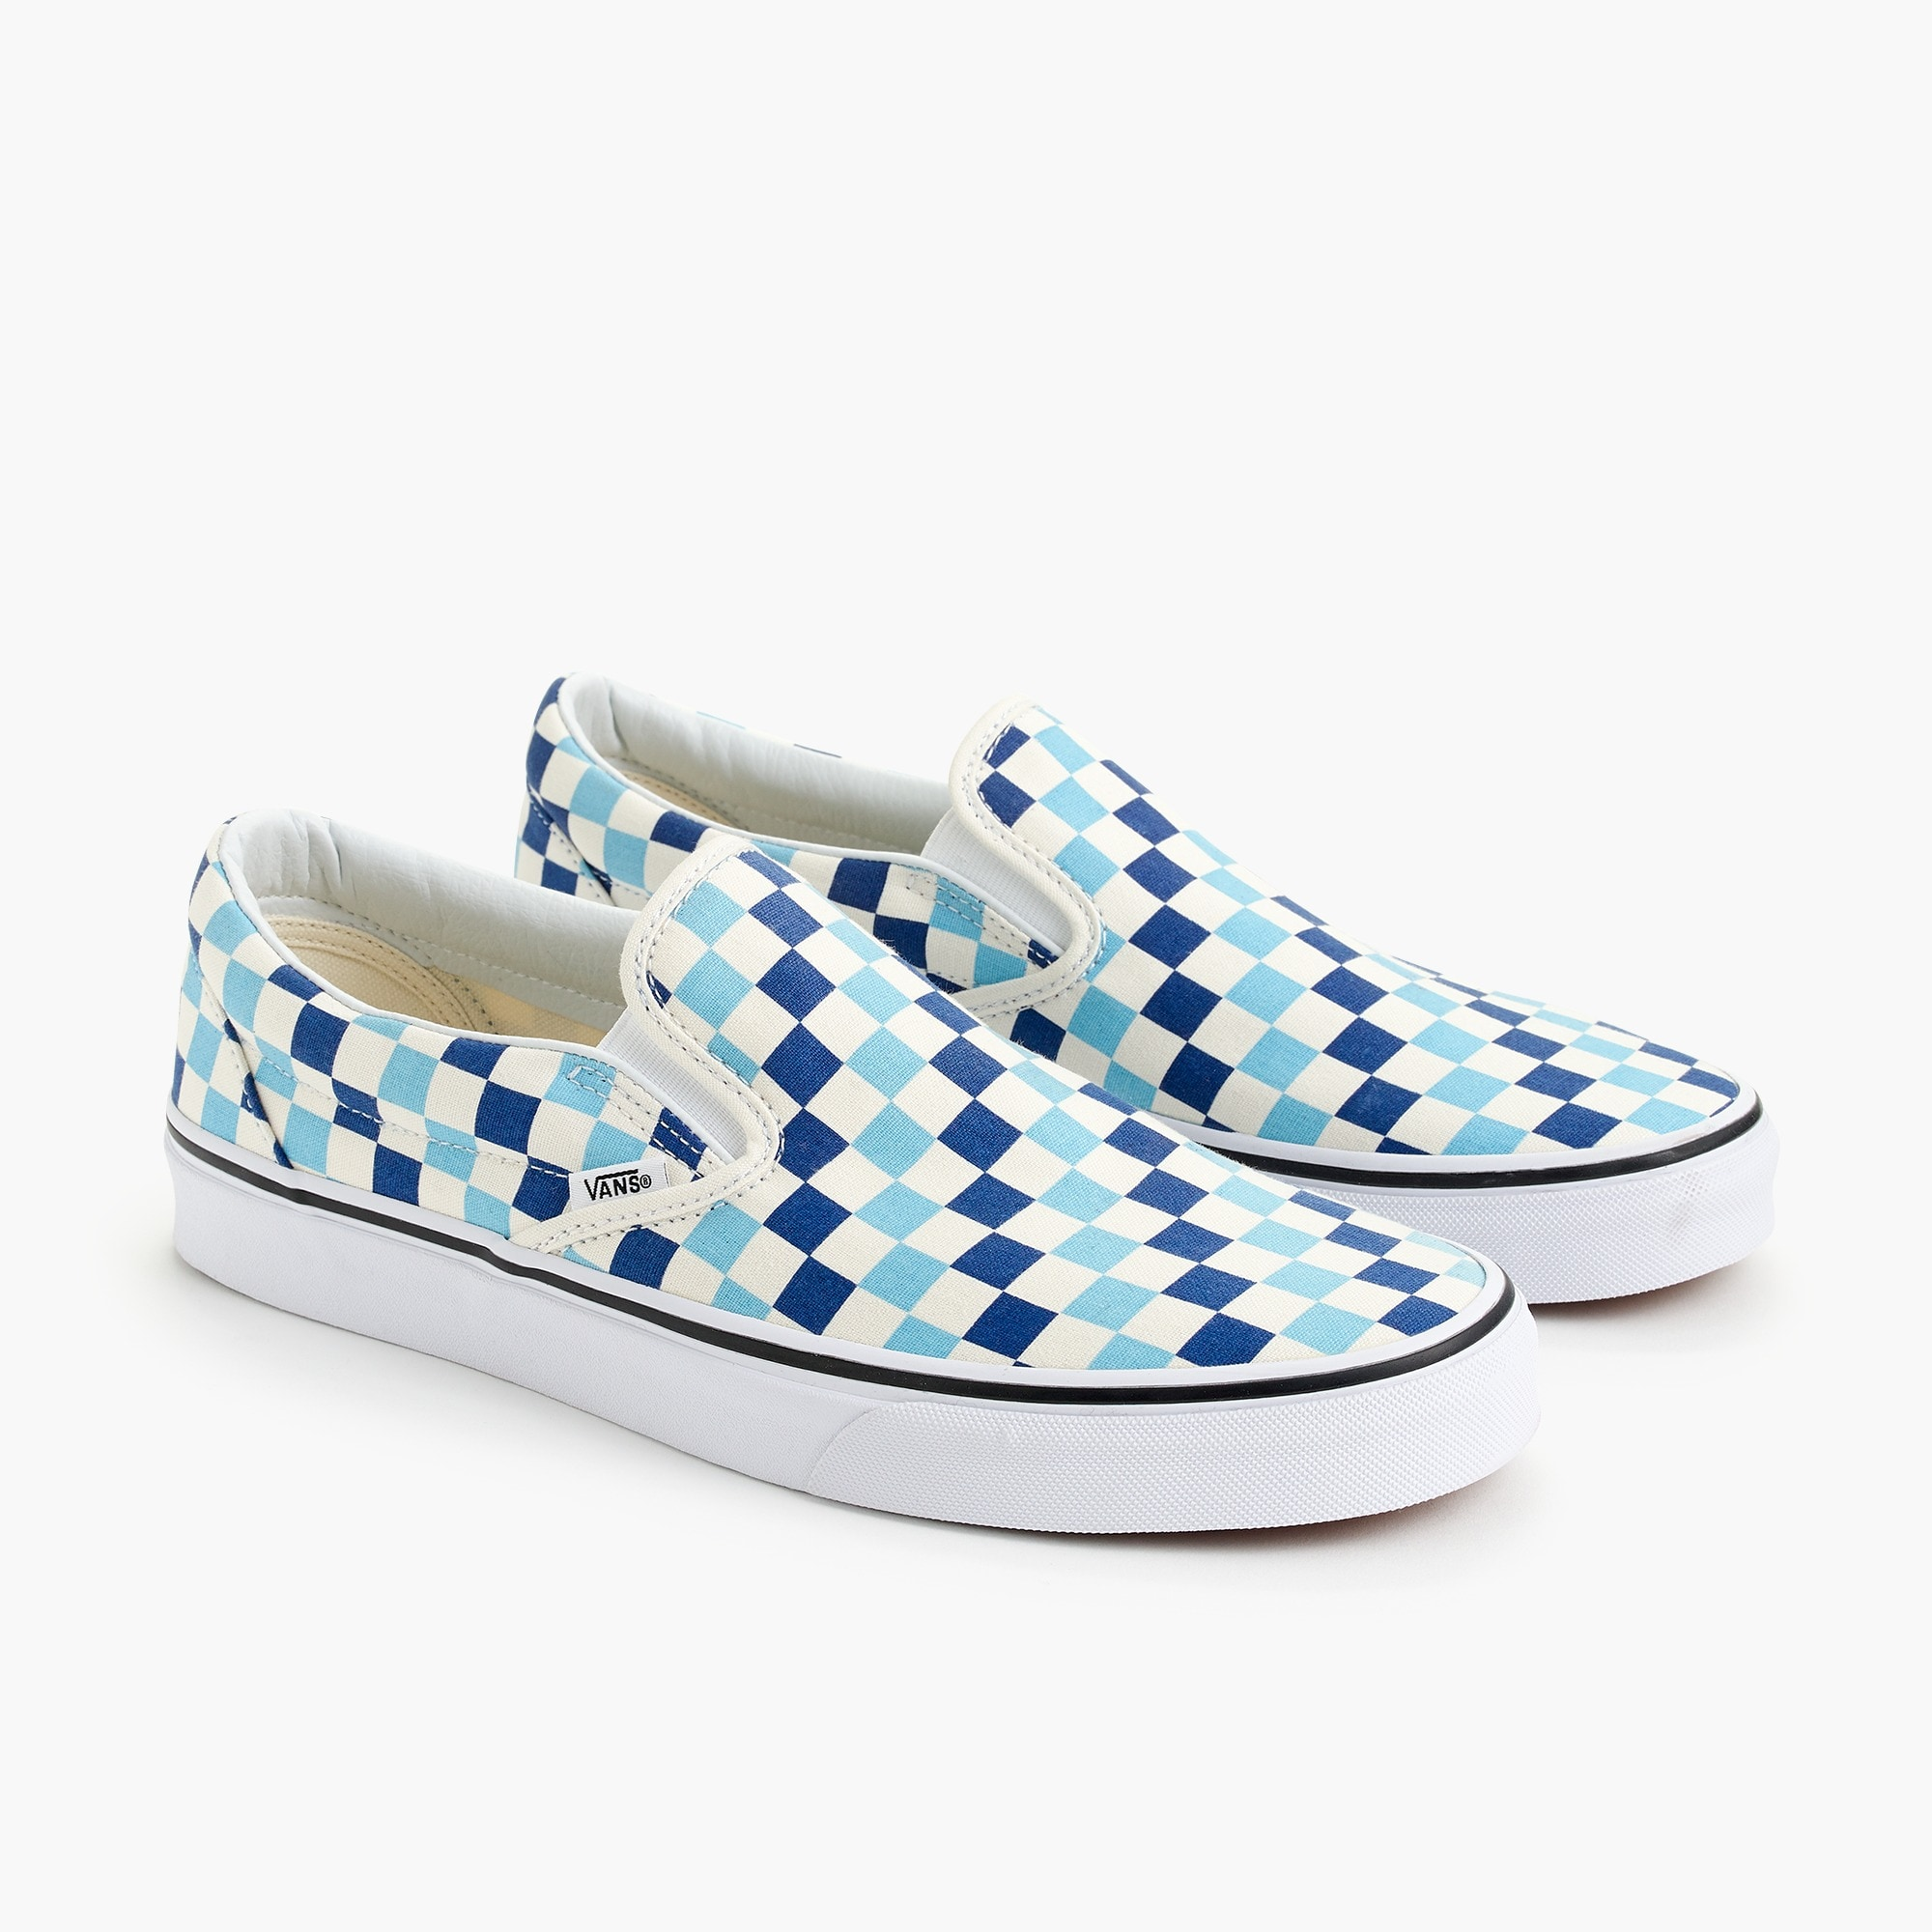 Image 2 for Vans® slip-on sneakers in blue checkerboard